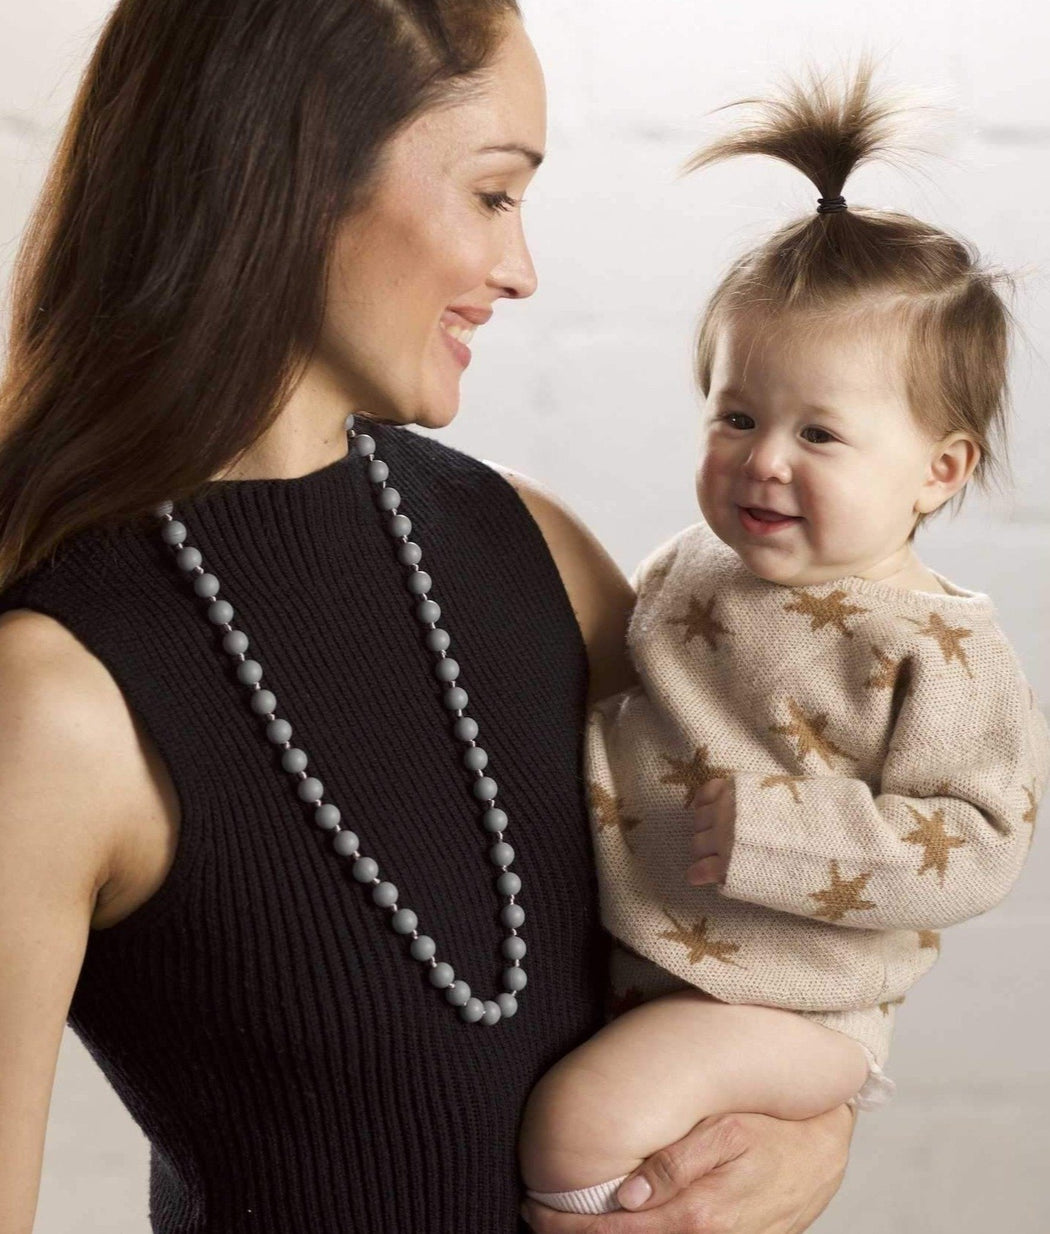 teething necklace for mom Silicone upper east side mom and baby